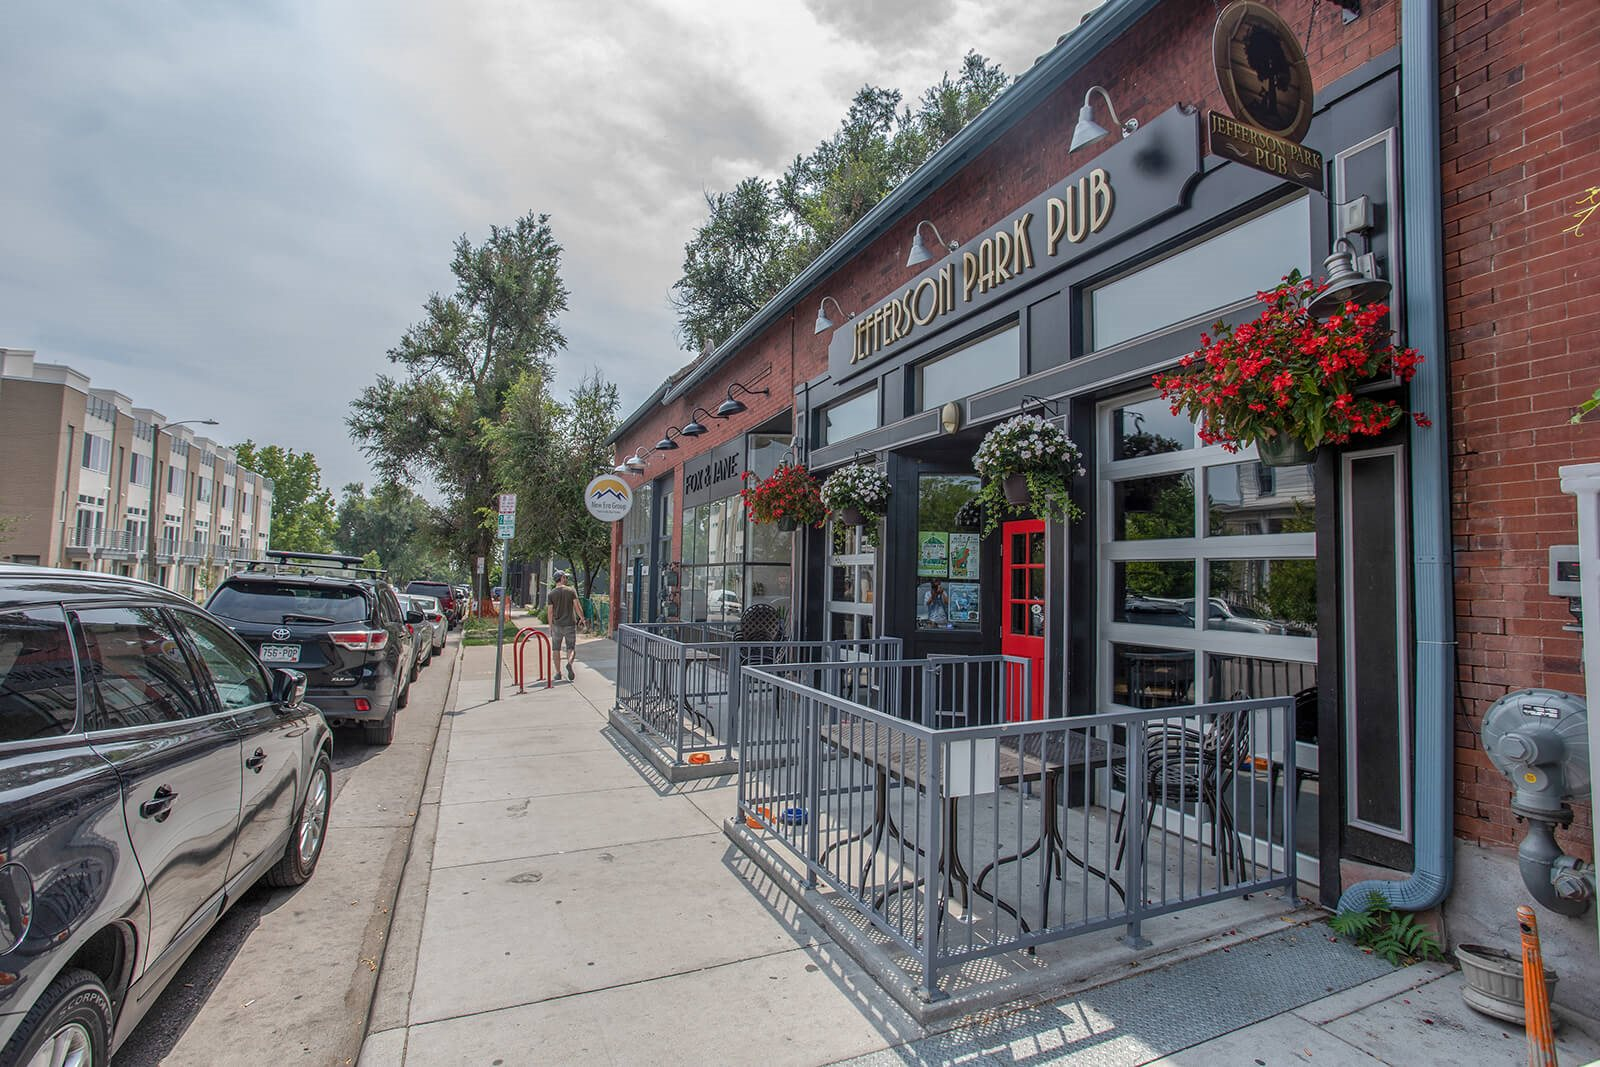 Lively Neighborhood with Local Pubs like Jefferson Park Pub around Element 47 by Windsor, Denver, CO